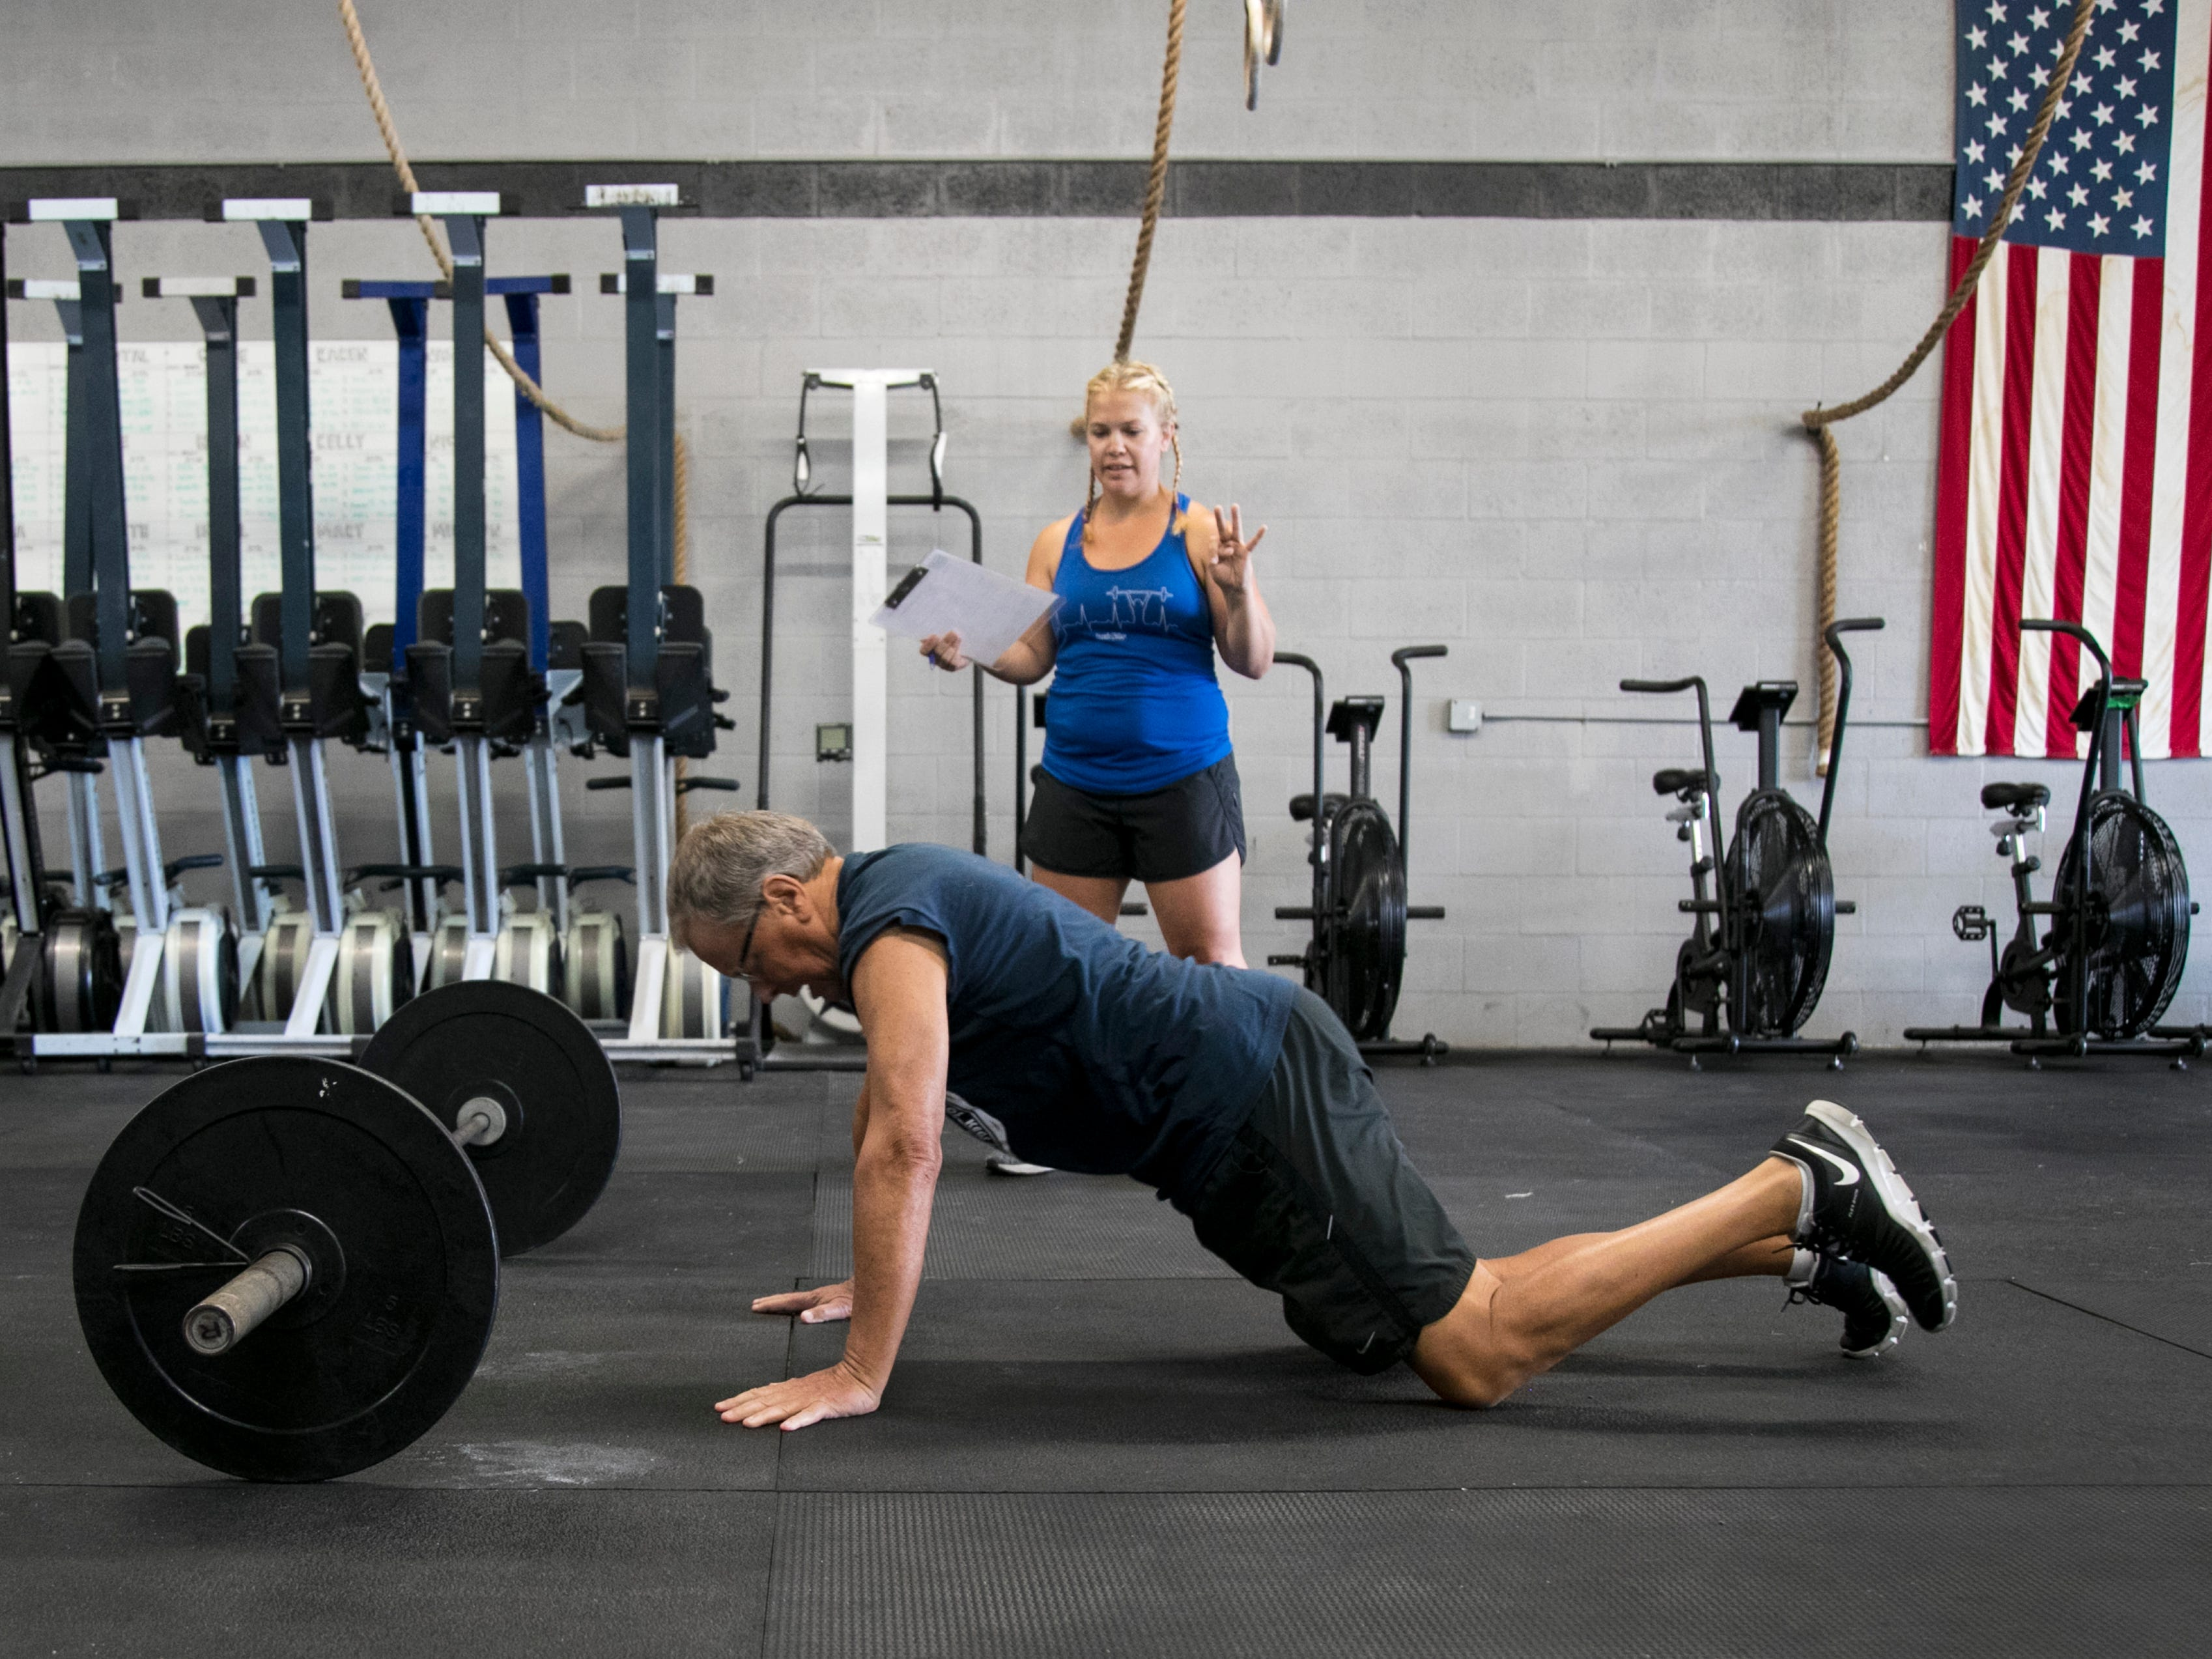 Bill Hanney, 62, does burpees as Lynn Schneider counts his reps during the CrossFit Open 19.4 workout on Friday, March 15, 2019, at CrossFit 239 in Fort Myers.